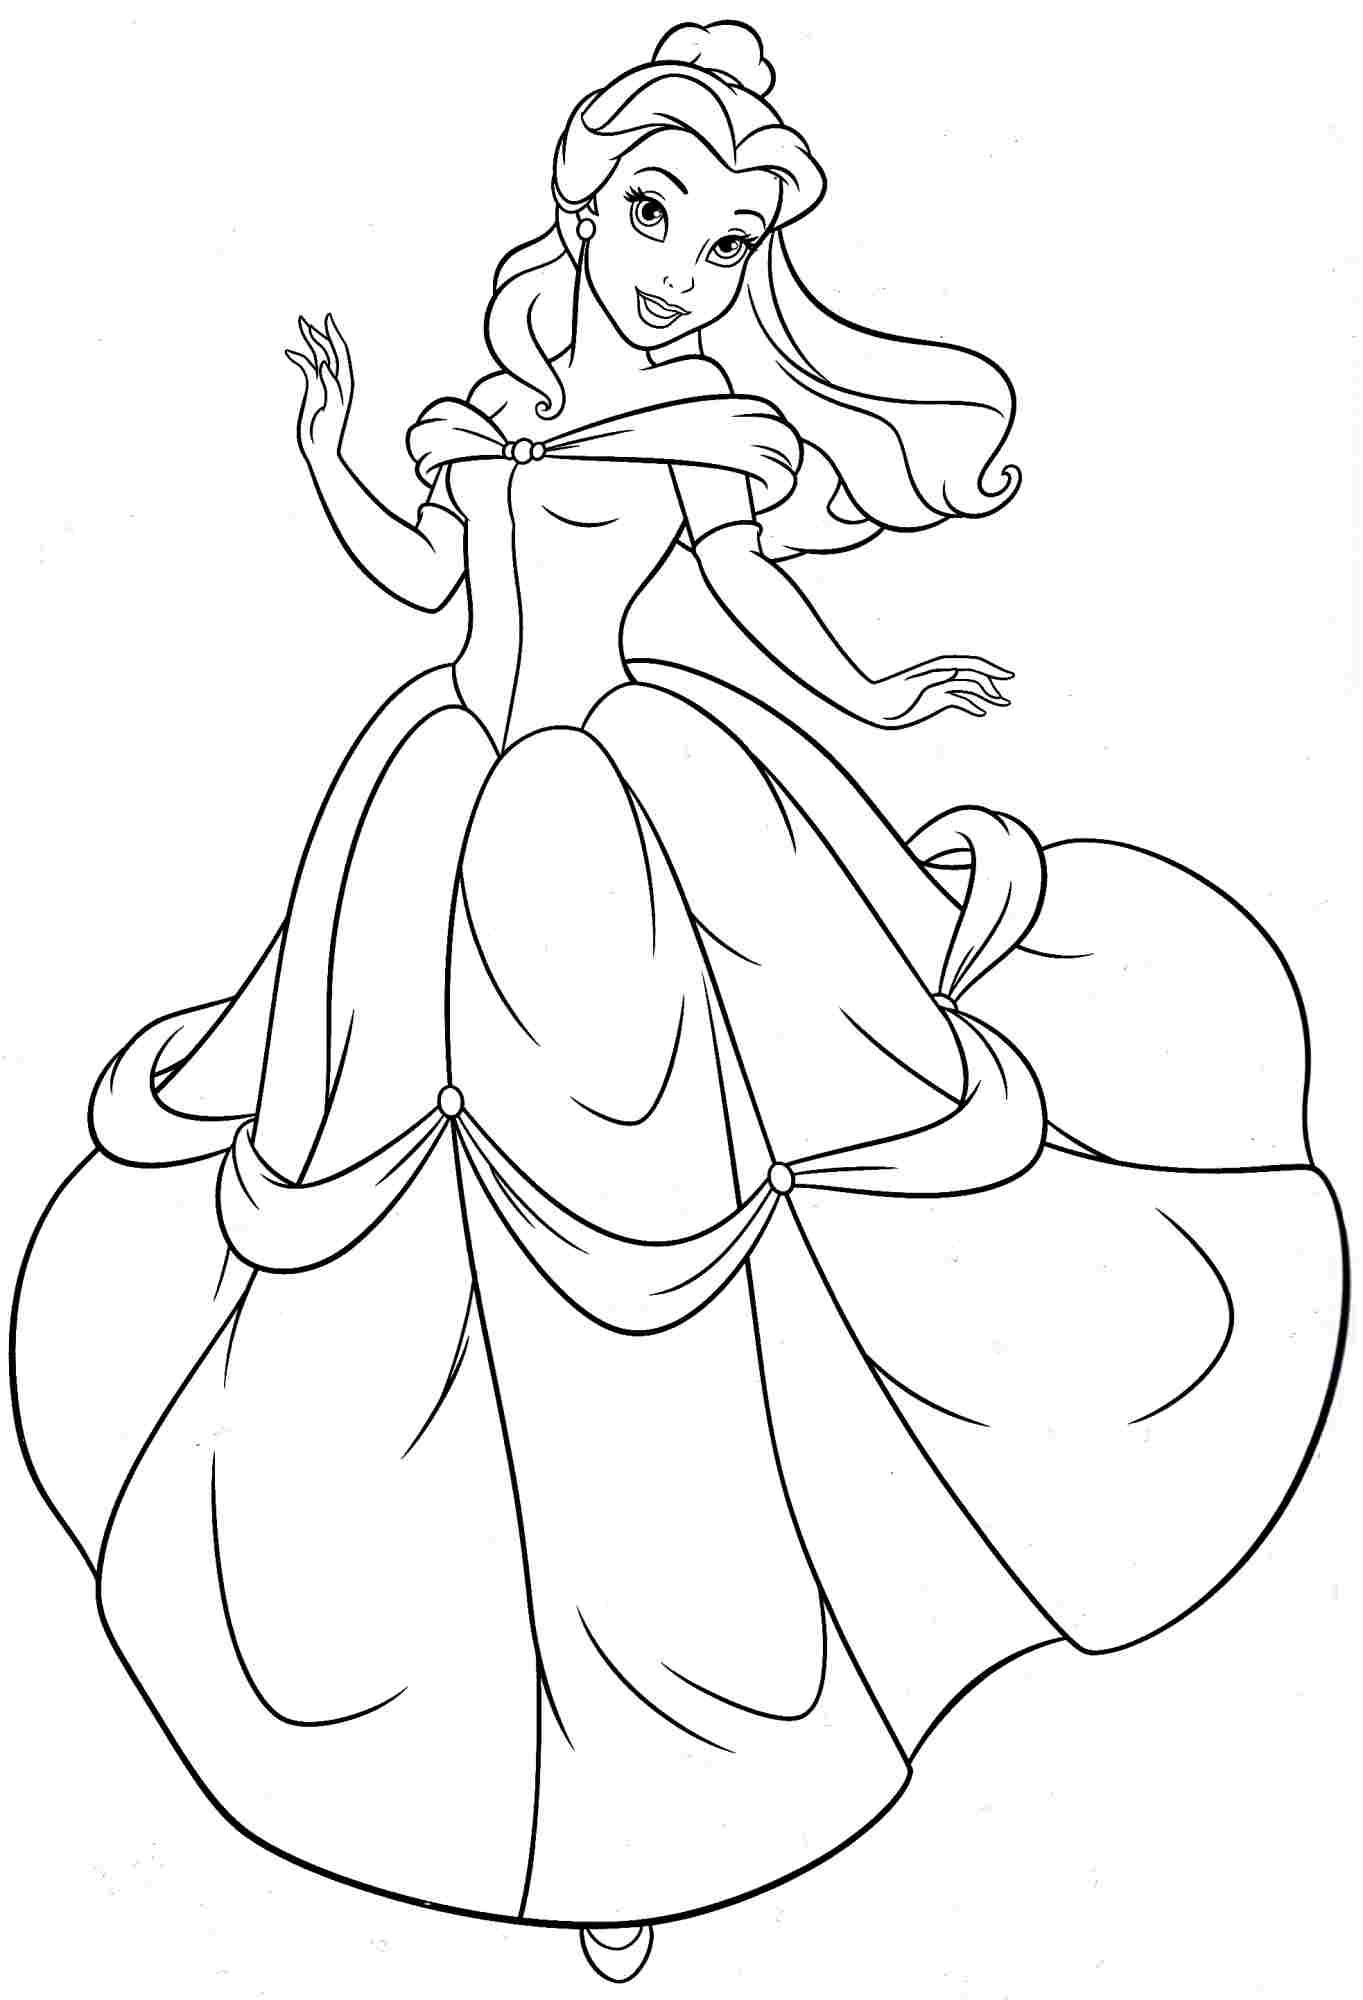 Disney Princess Colouring Pages To Print For Free